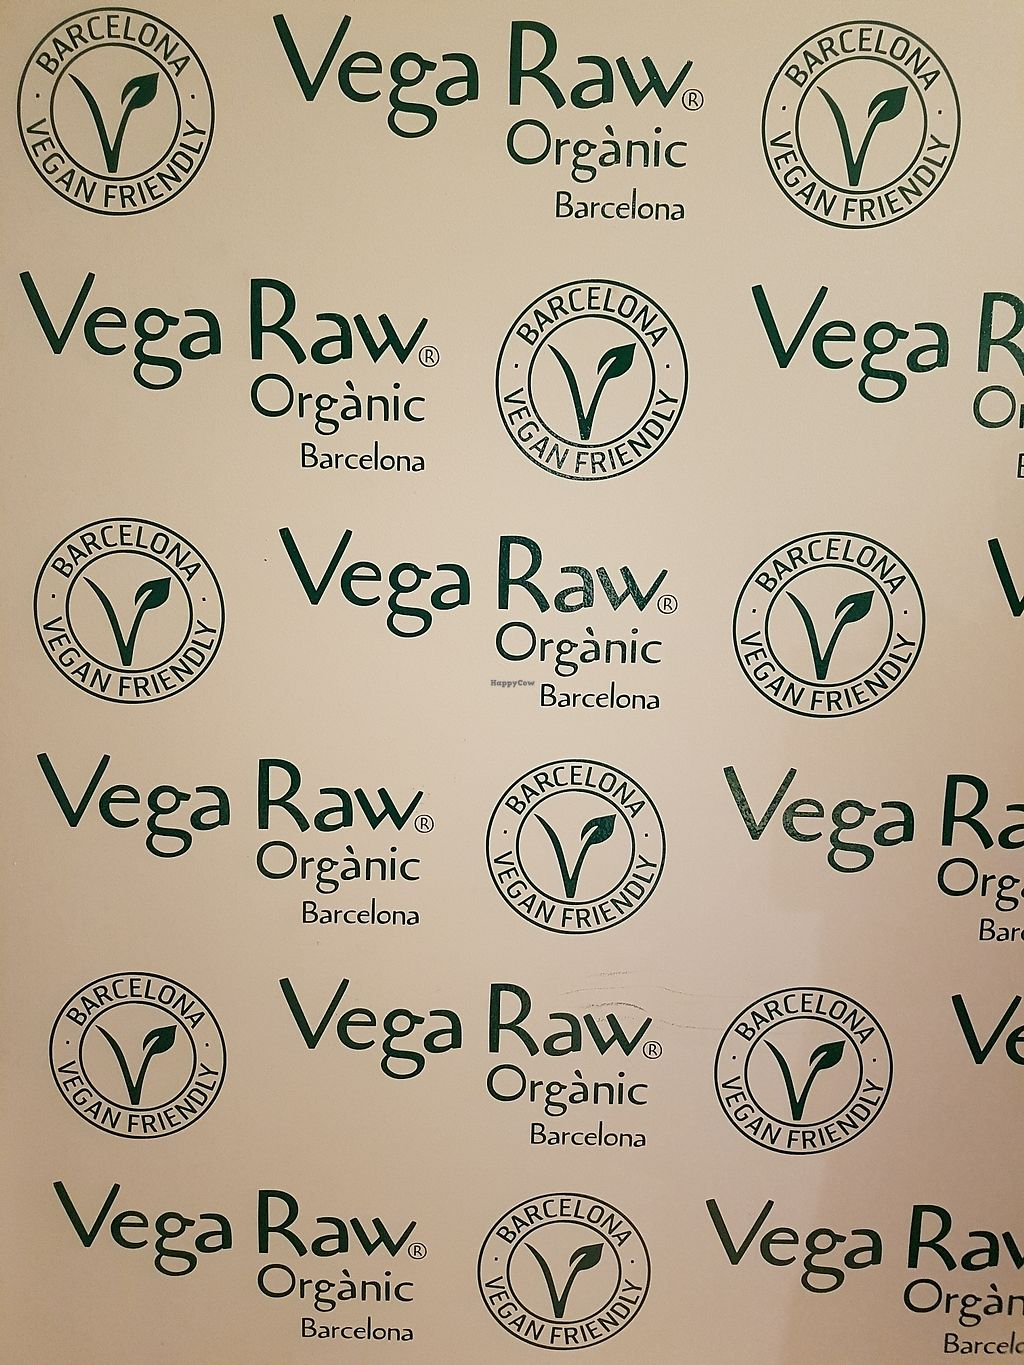 """Photo of Vega Raw Organic  by <a href=""""/members/profile/AngryxPhil"""">AngryxPhil</a> <br/>Vega Raw ! <br/> August 11, 2017  - <a href='/contact/abuse/image/94882/291669'>Report</a>"""